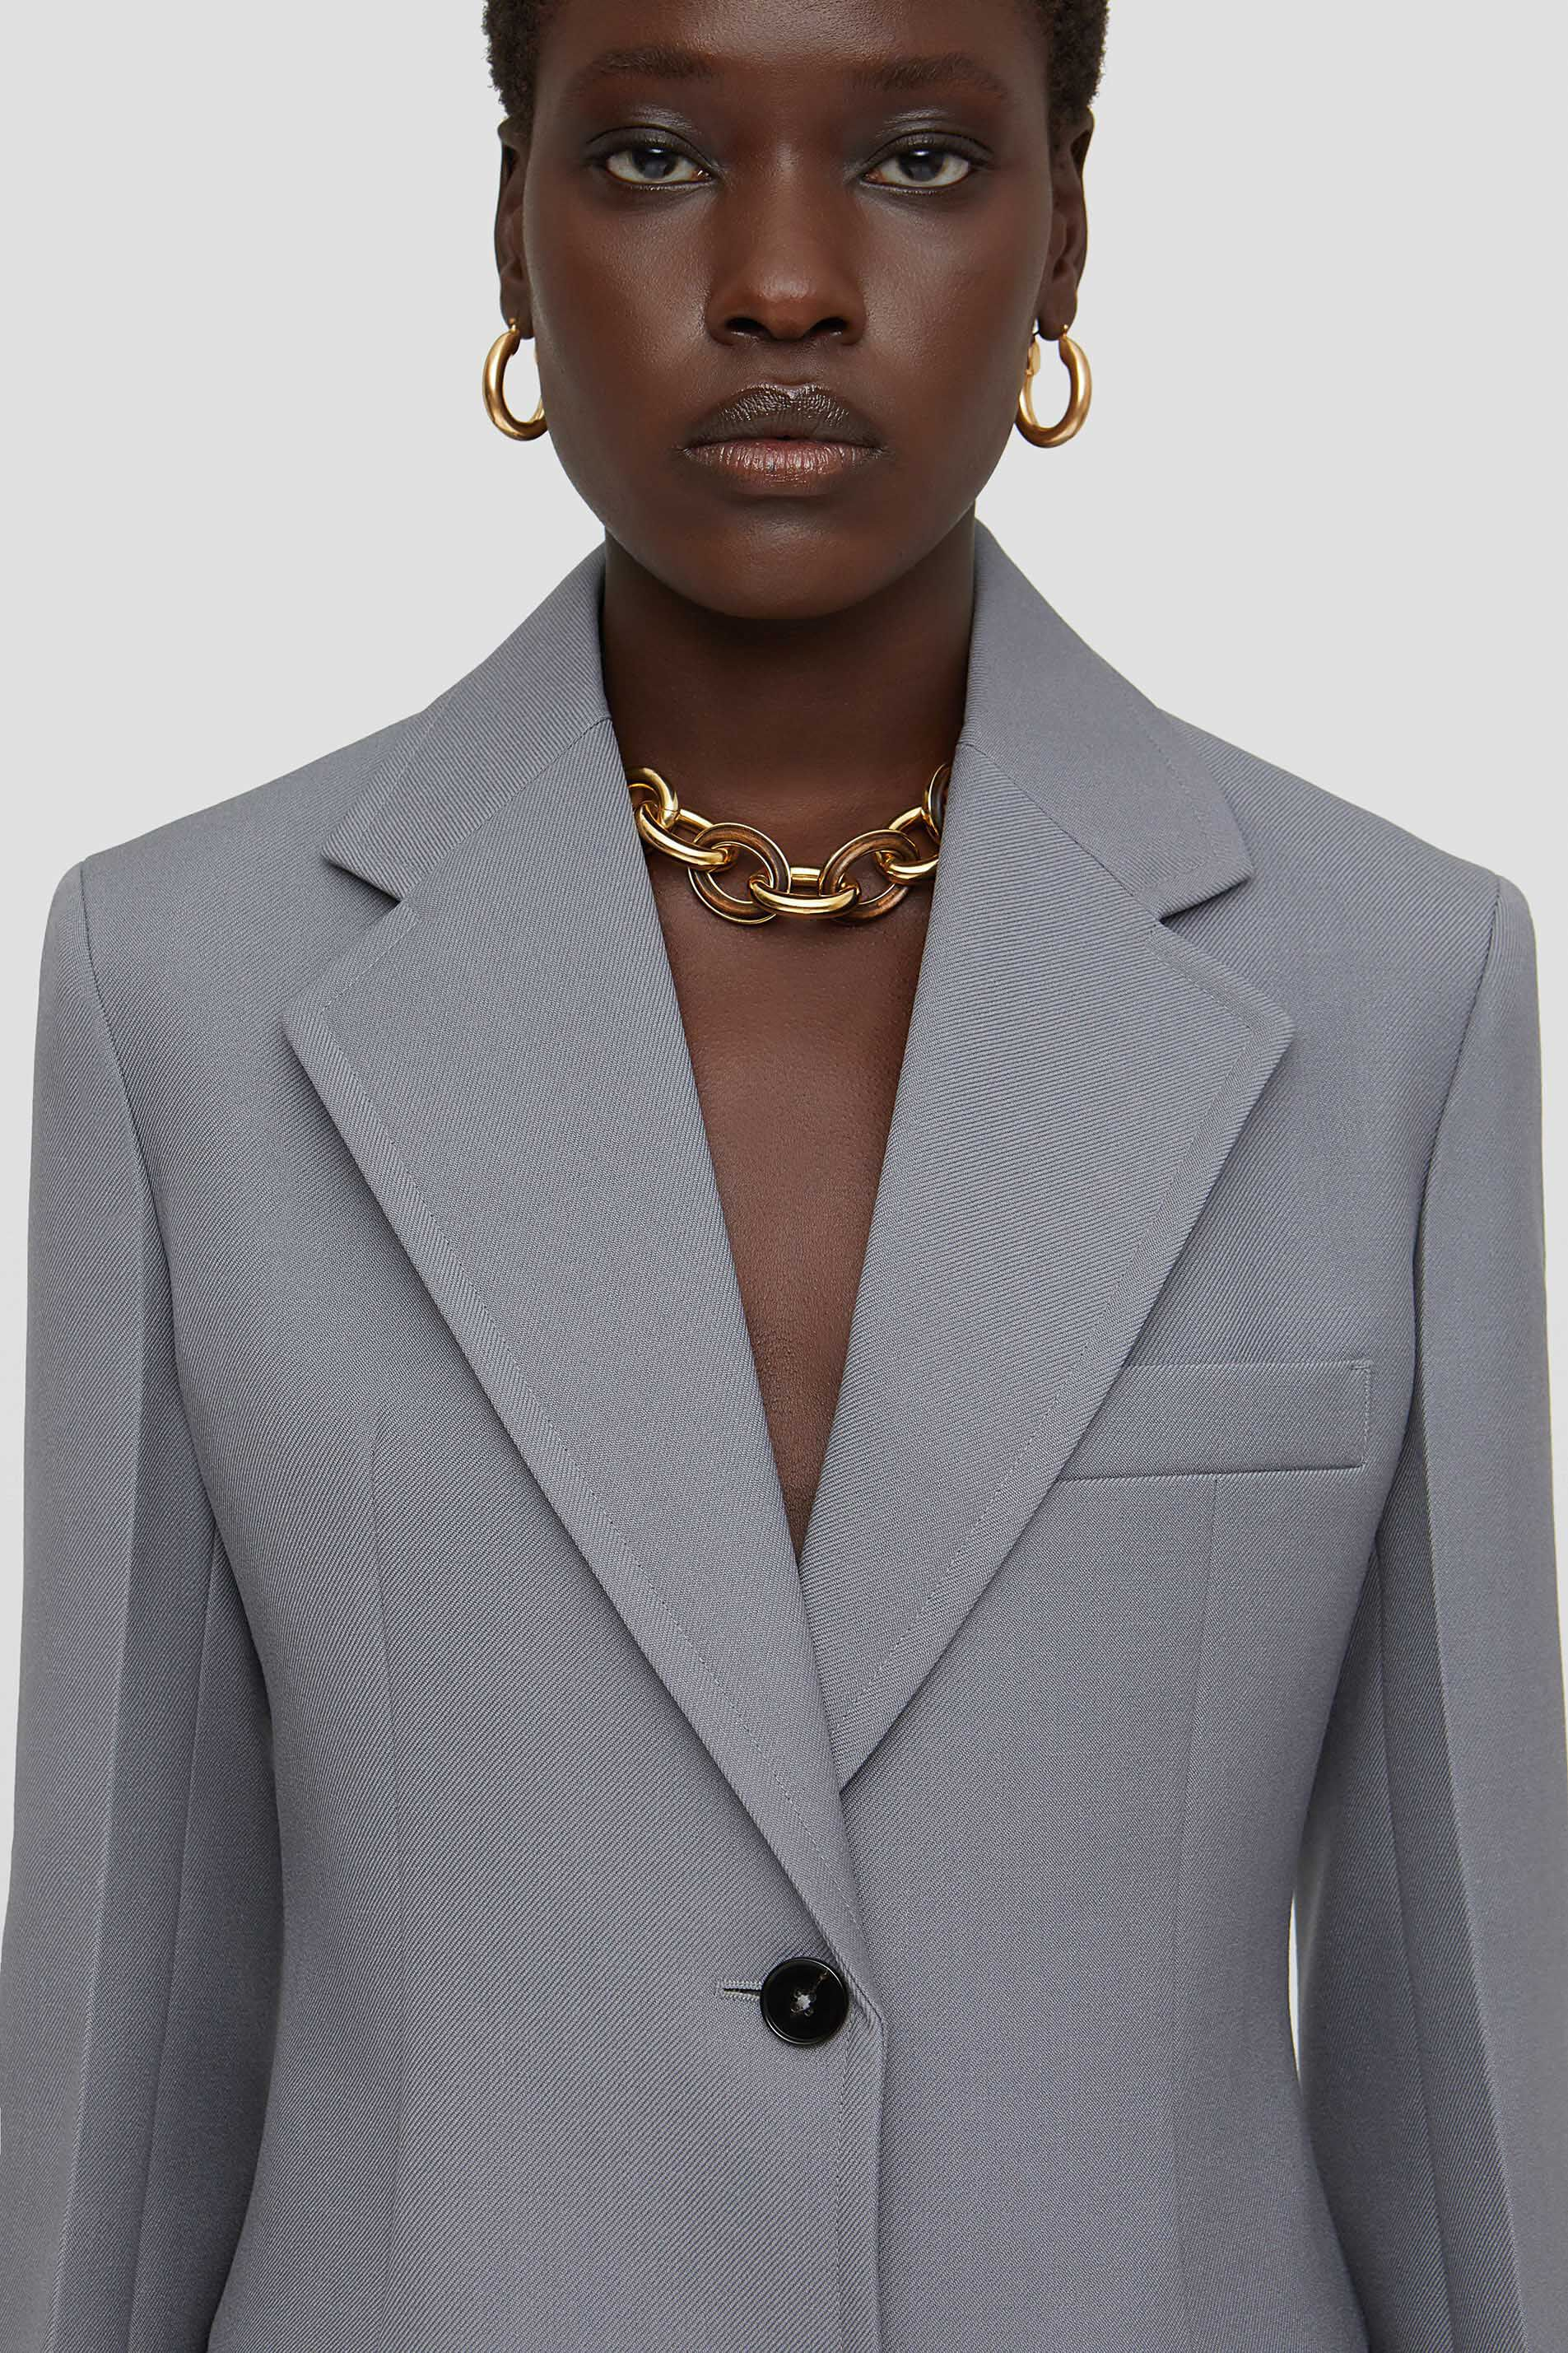 Tailored Jacket, grey, large